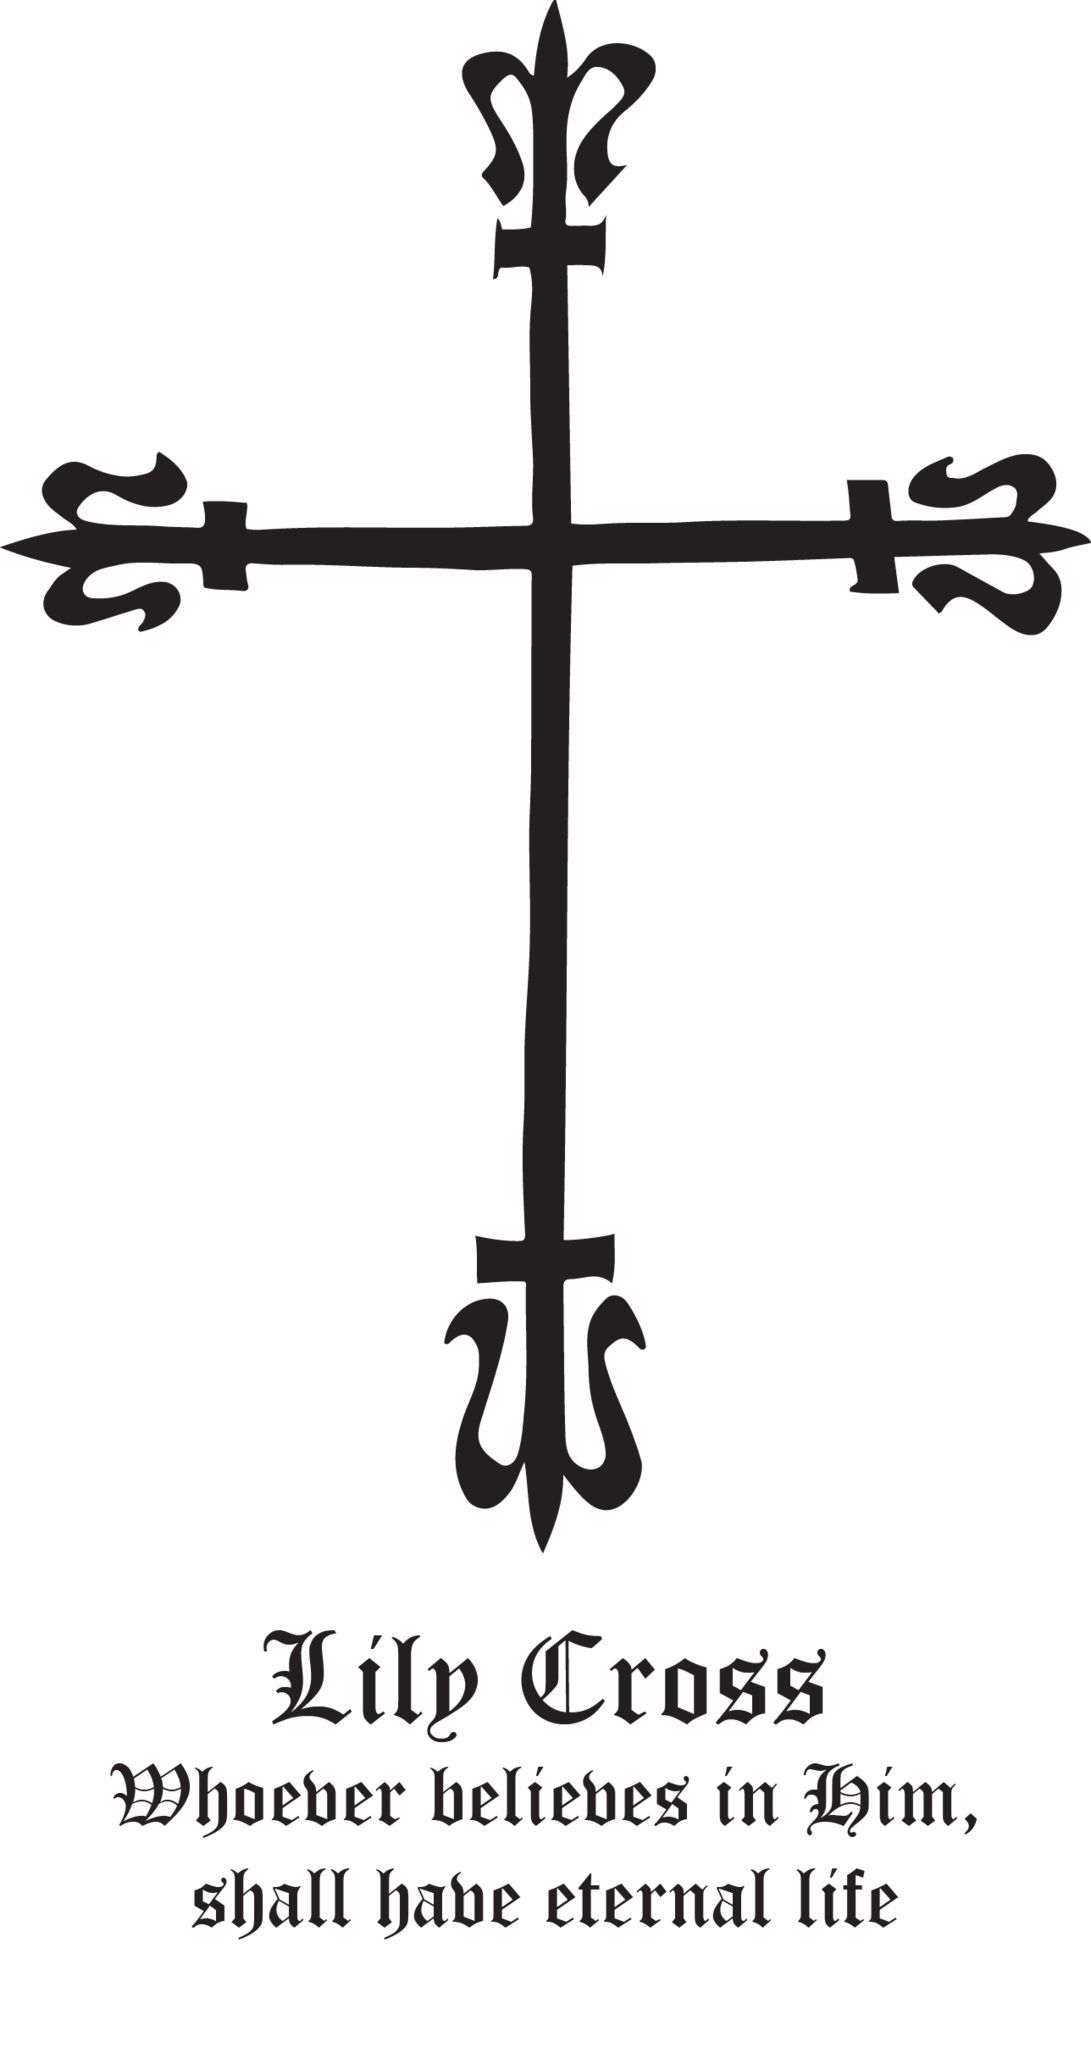 Rudolf koch christian symbol 120 lily cross symbols show your support for your faith with rudolf kochs christian symbols these gorgeous and eternally hand drawn skillfully crafted christian symbols are biocorpaavc Gallery